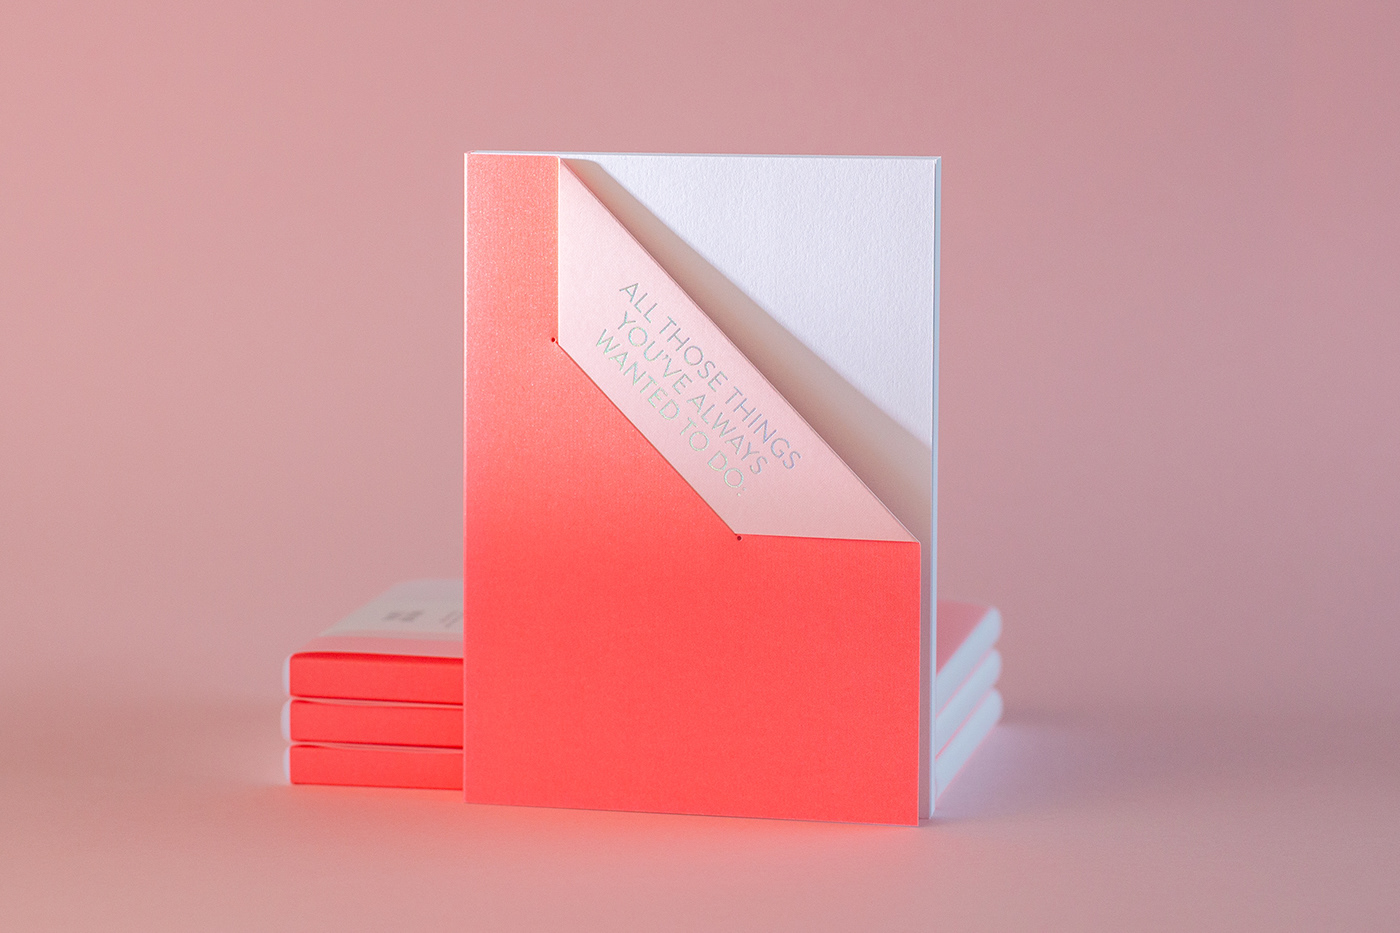 Corporate Identity gmund hotfoil less is more notebook Quotes